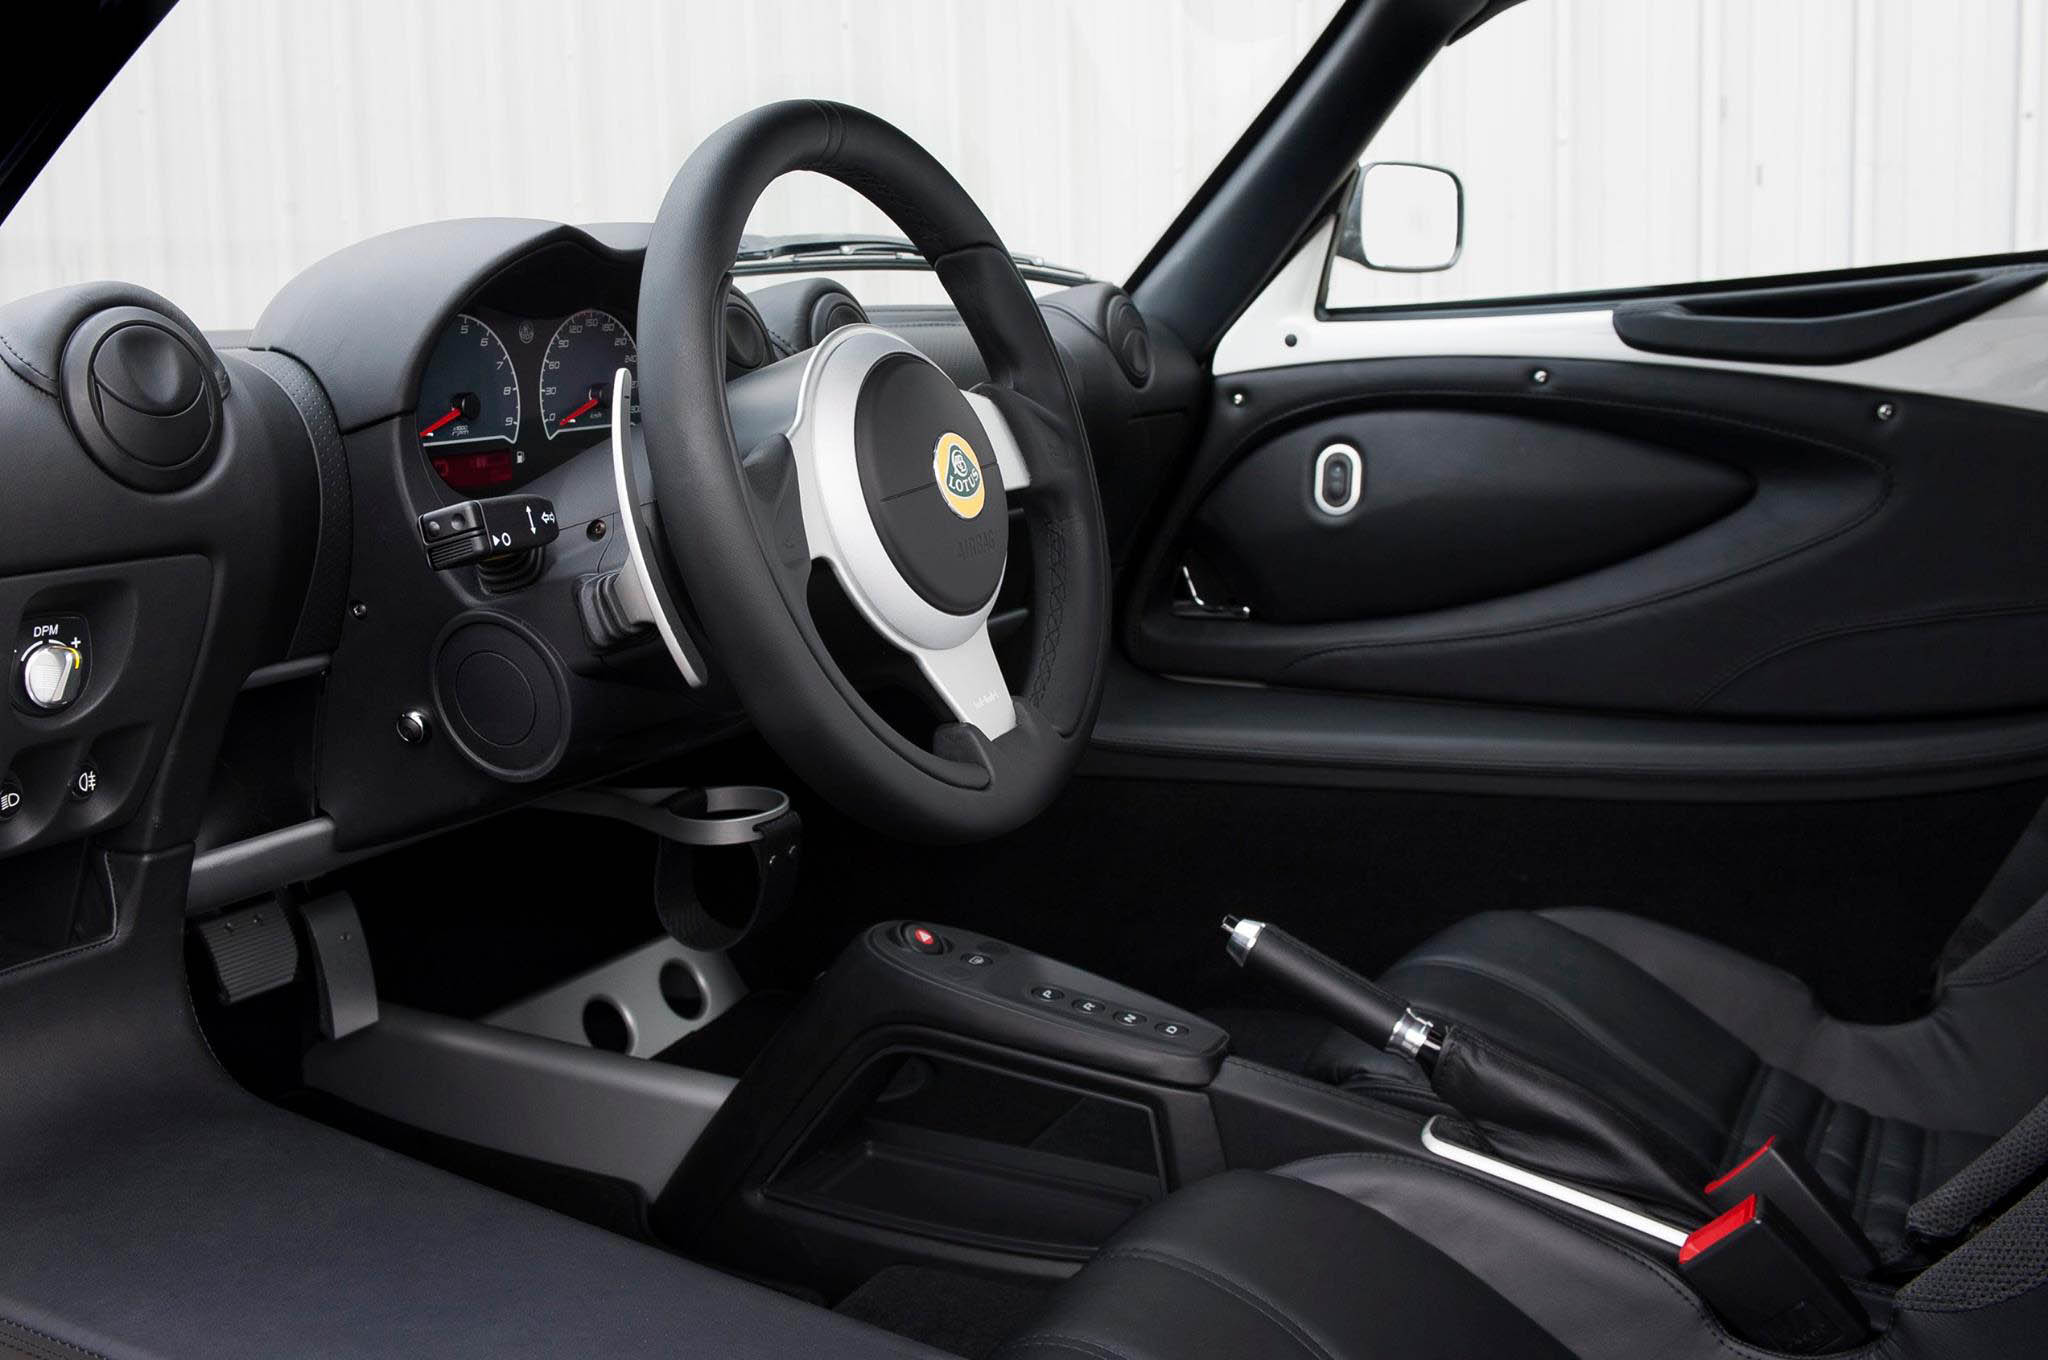 http://st.automobilemag.com/uploads/sites/10/2015/09/2015-lotus-exige-s-automatic-interior.jpg